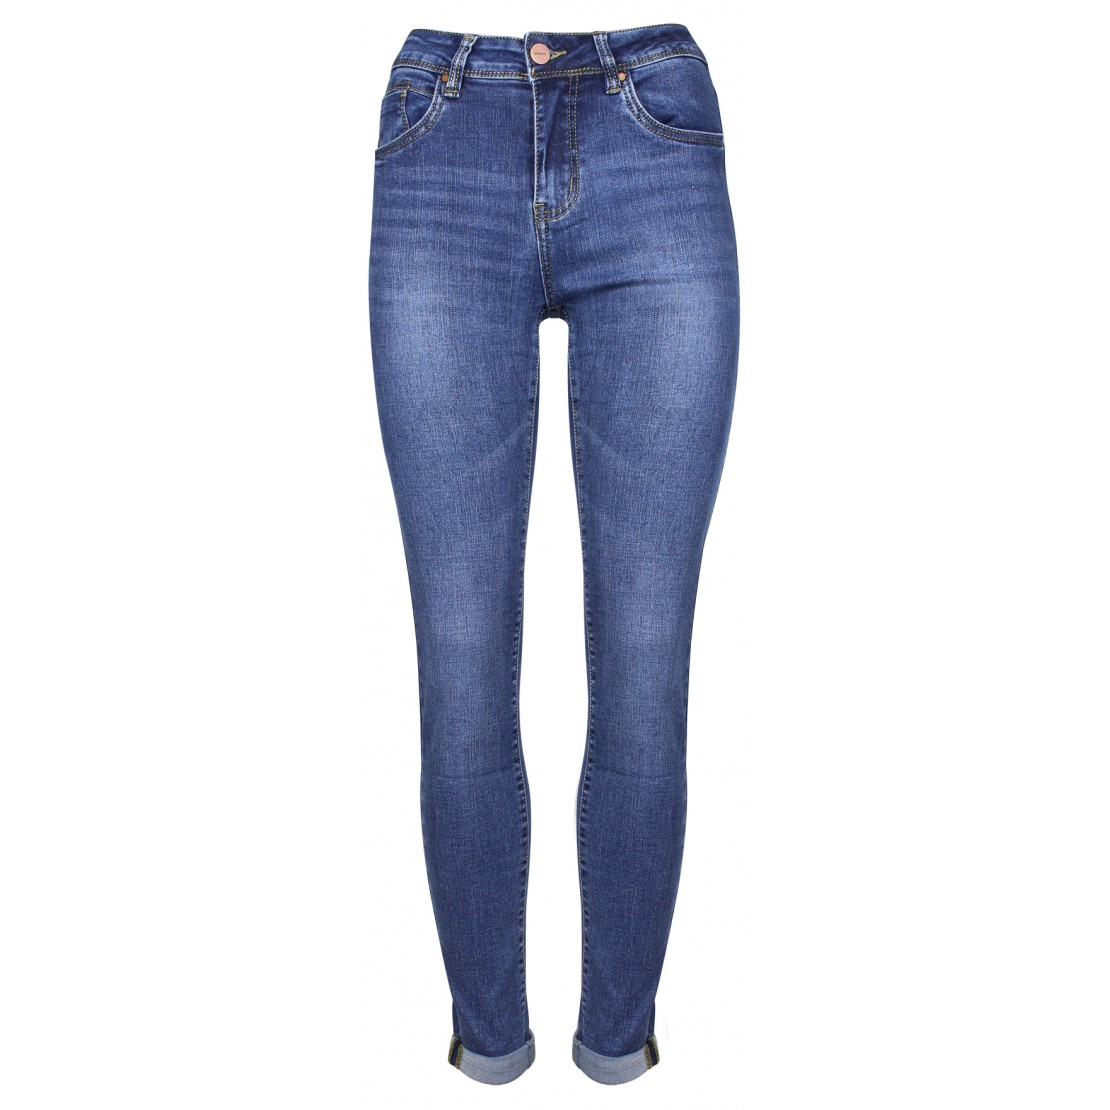 Norfy jeans 6506